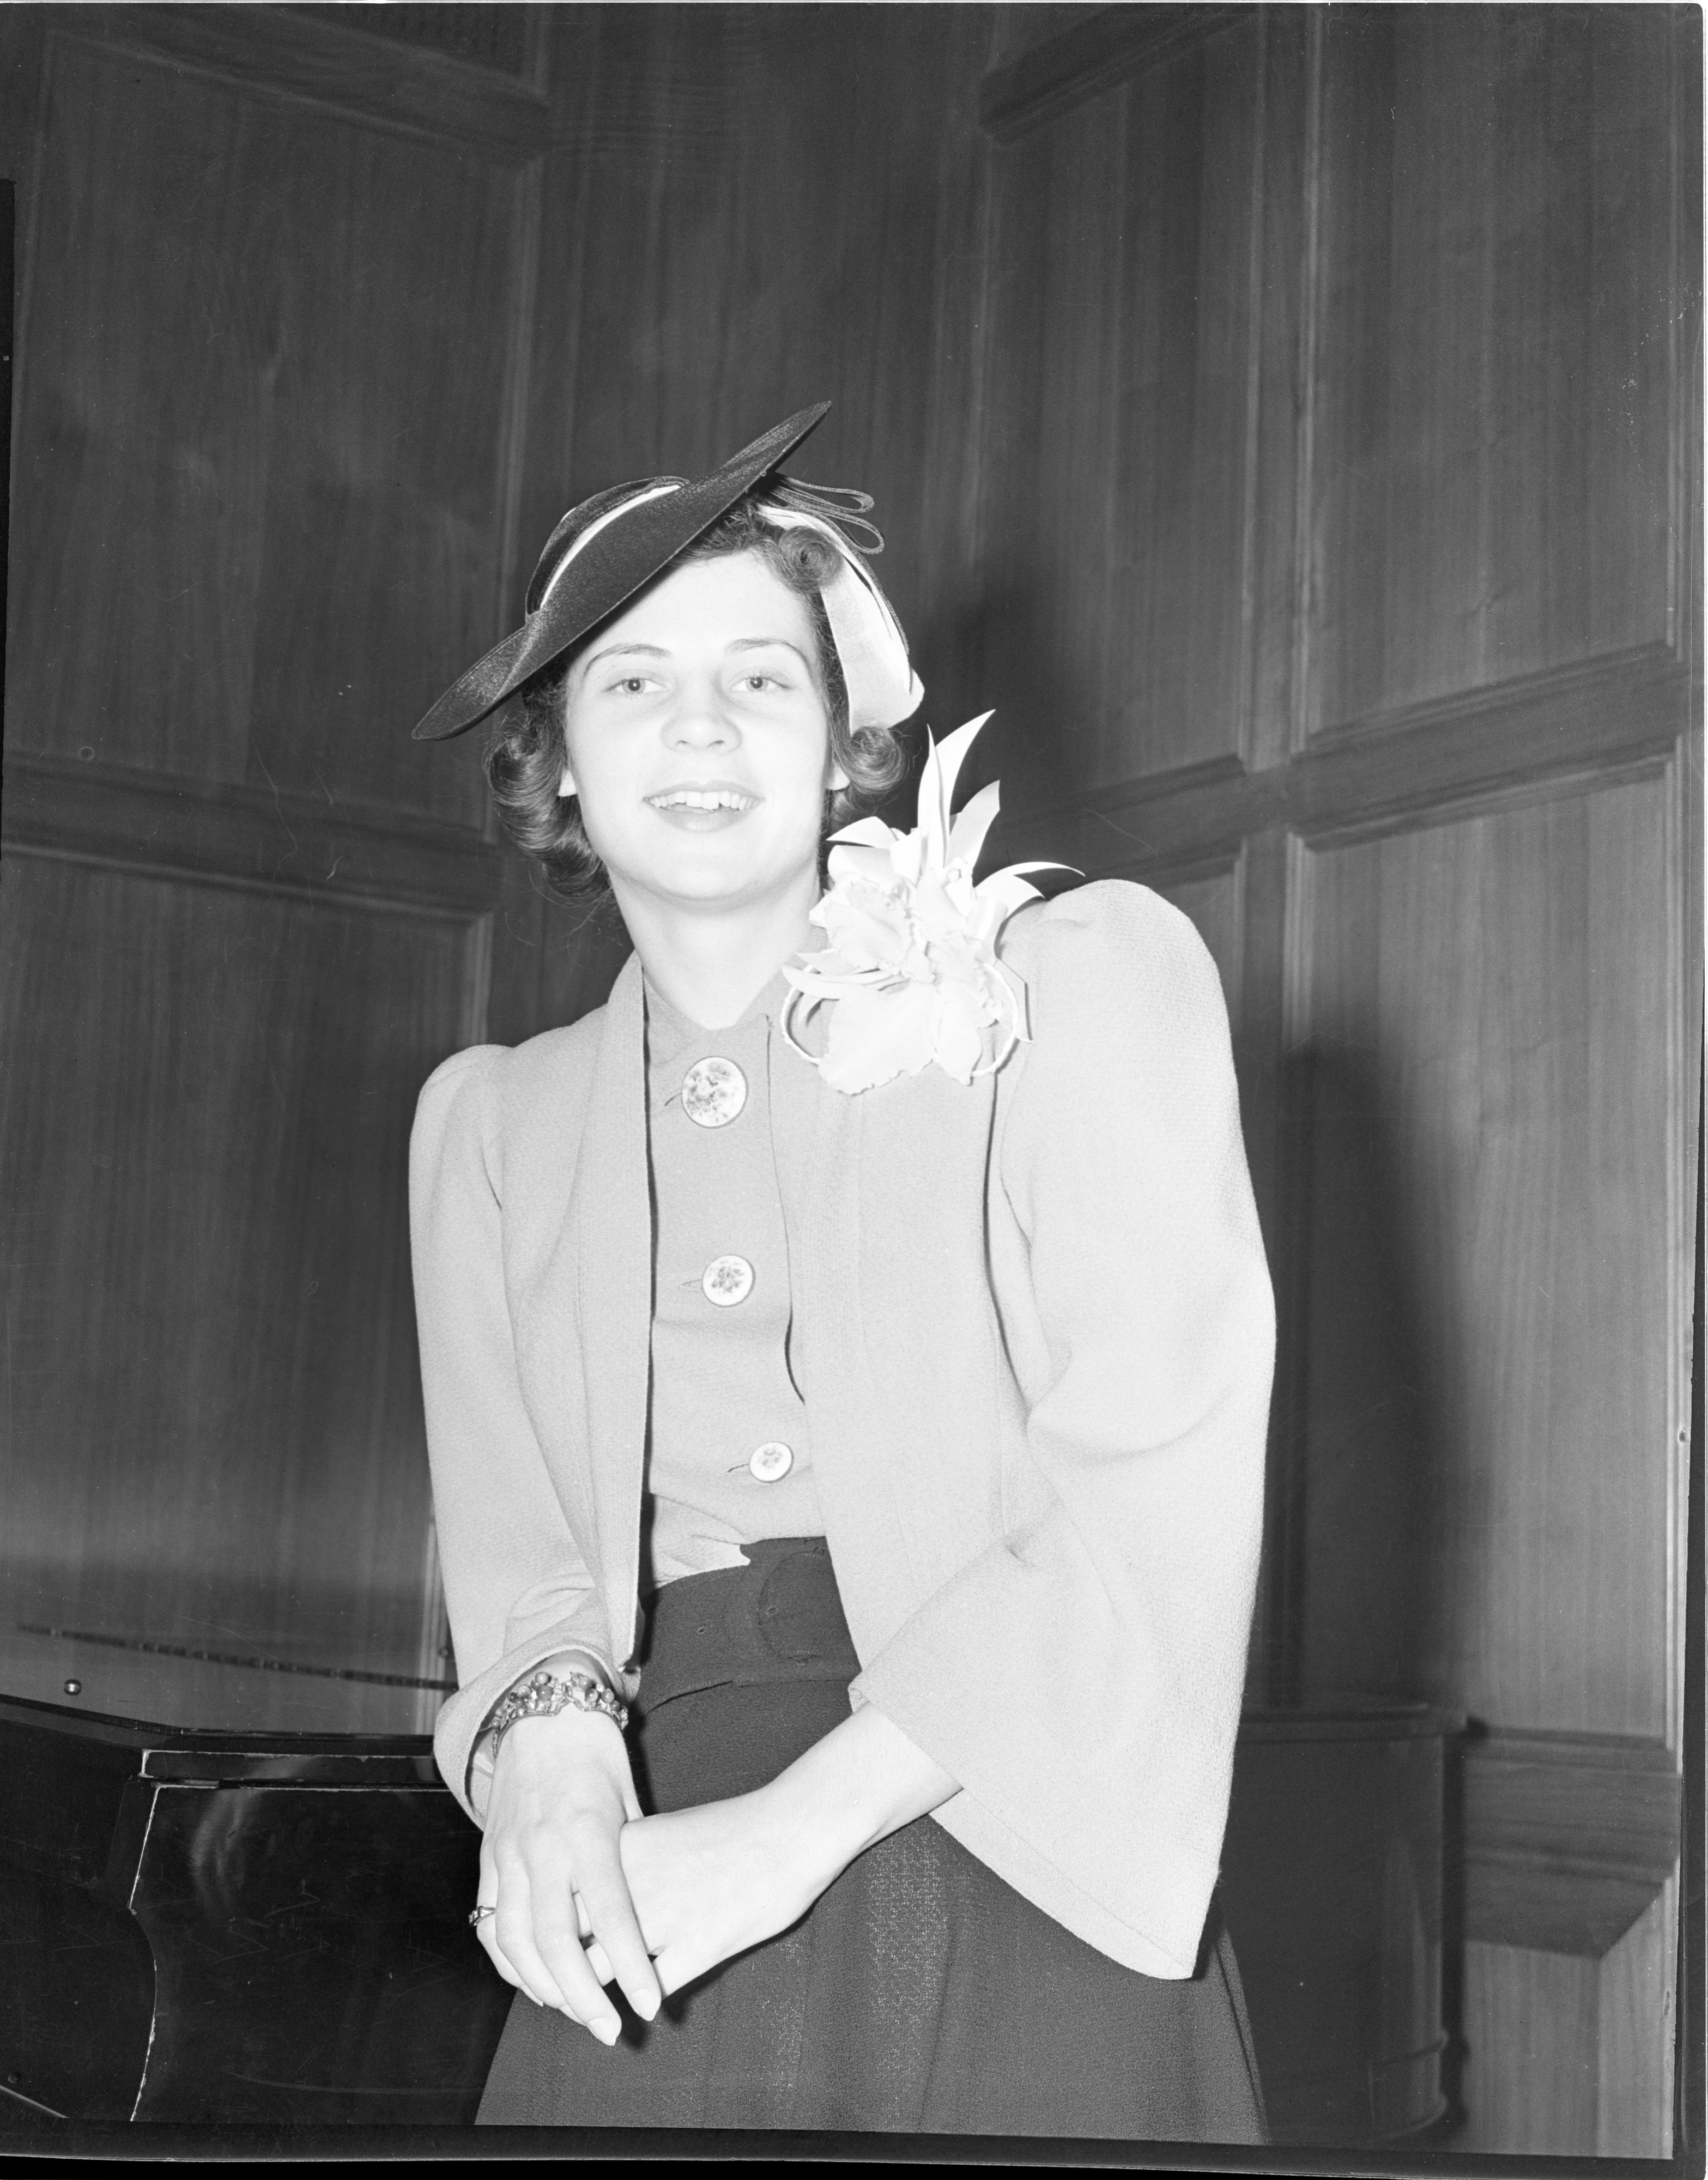 Mrs. Lawrence Ouimet, The Former Magdalene Collins, At Her Wedding Reception, January 1939 image